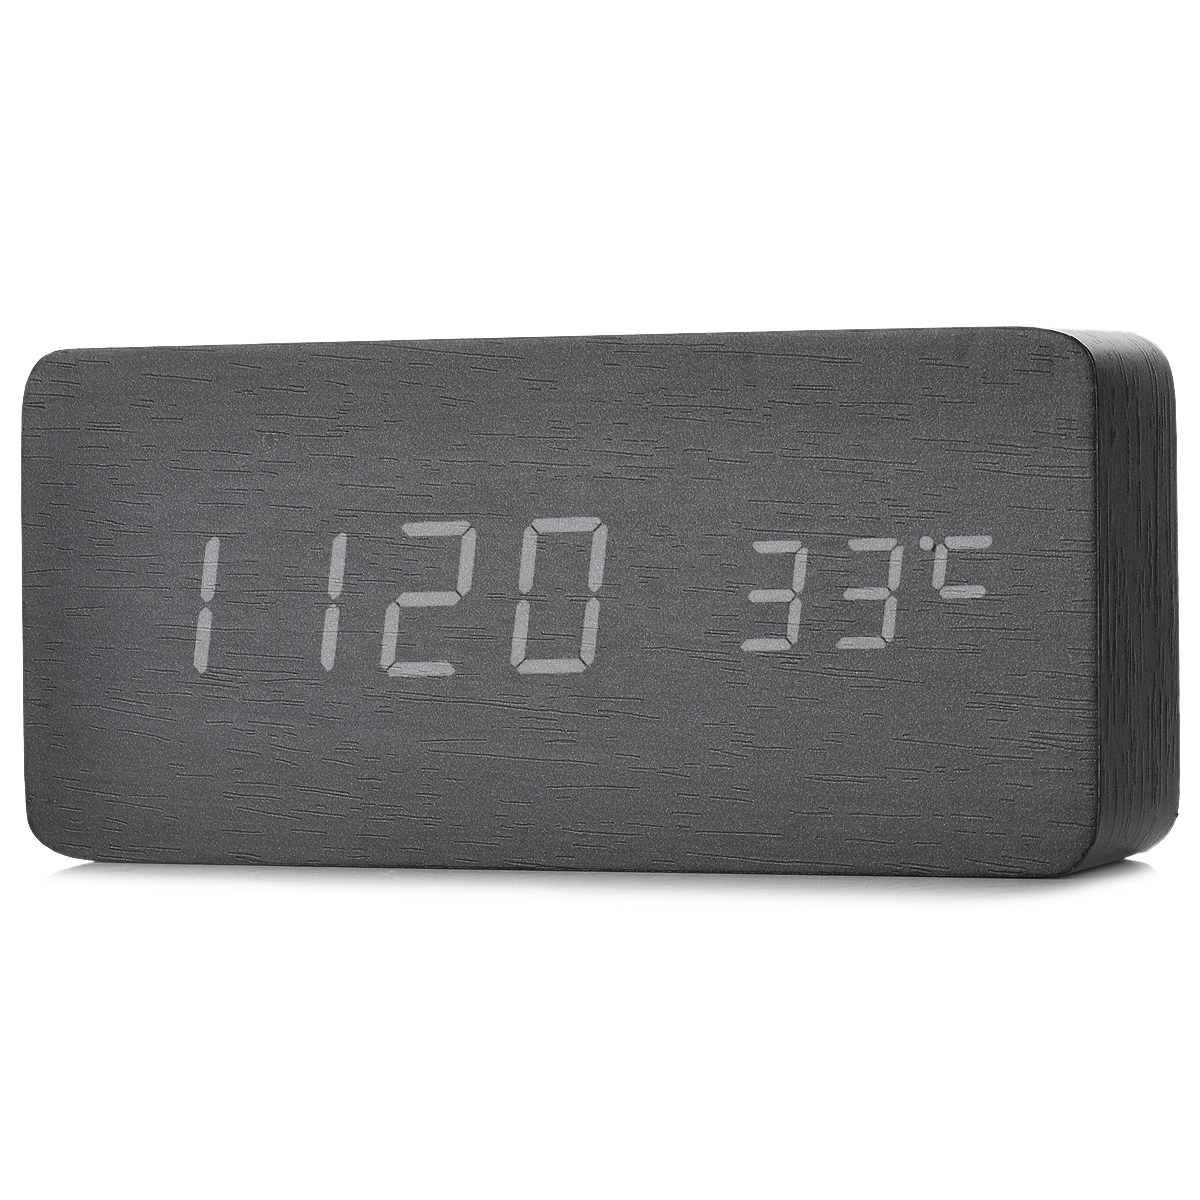 Li&Tai 6035 USB Powered Desktop White LED Alarm Clock w/ Temperature Display - Black (4 x AAA)